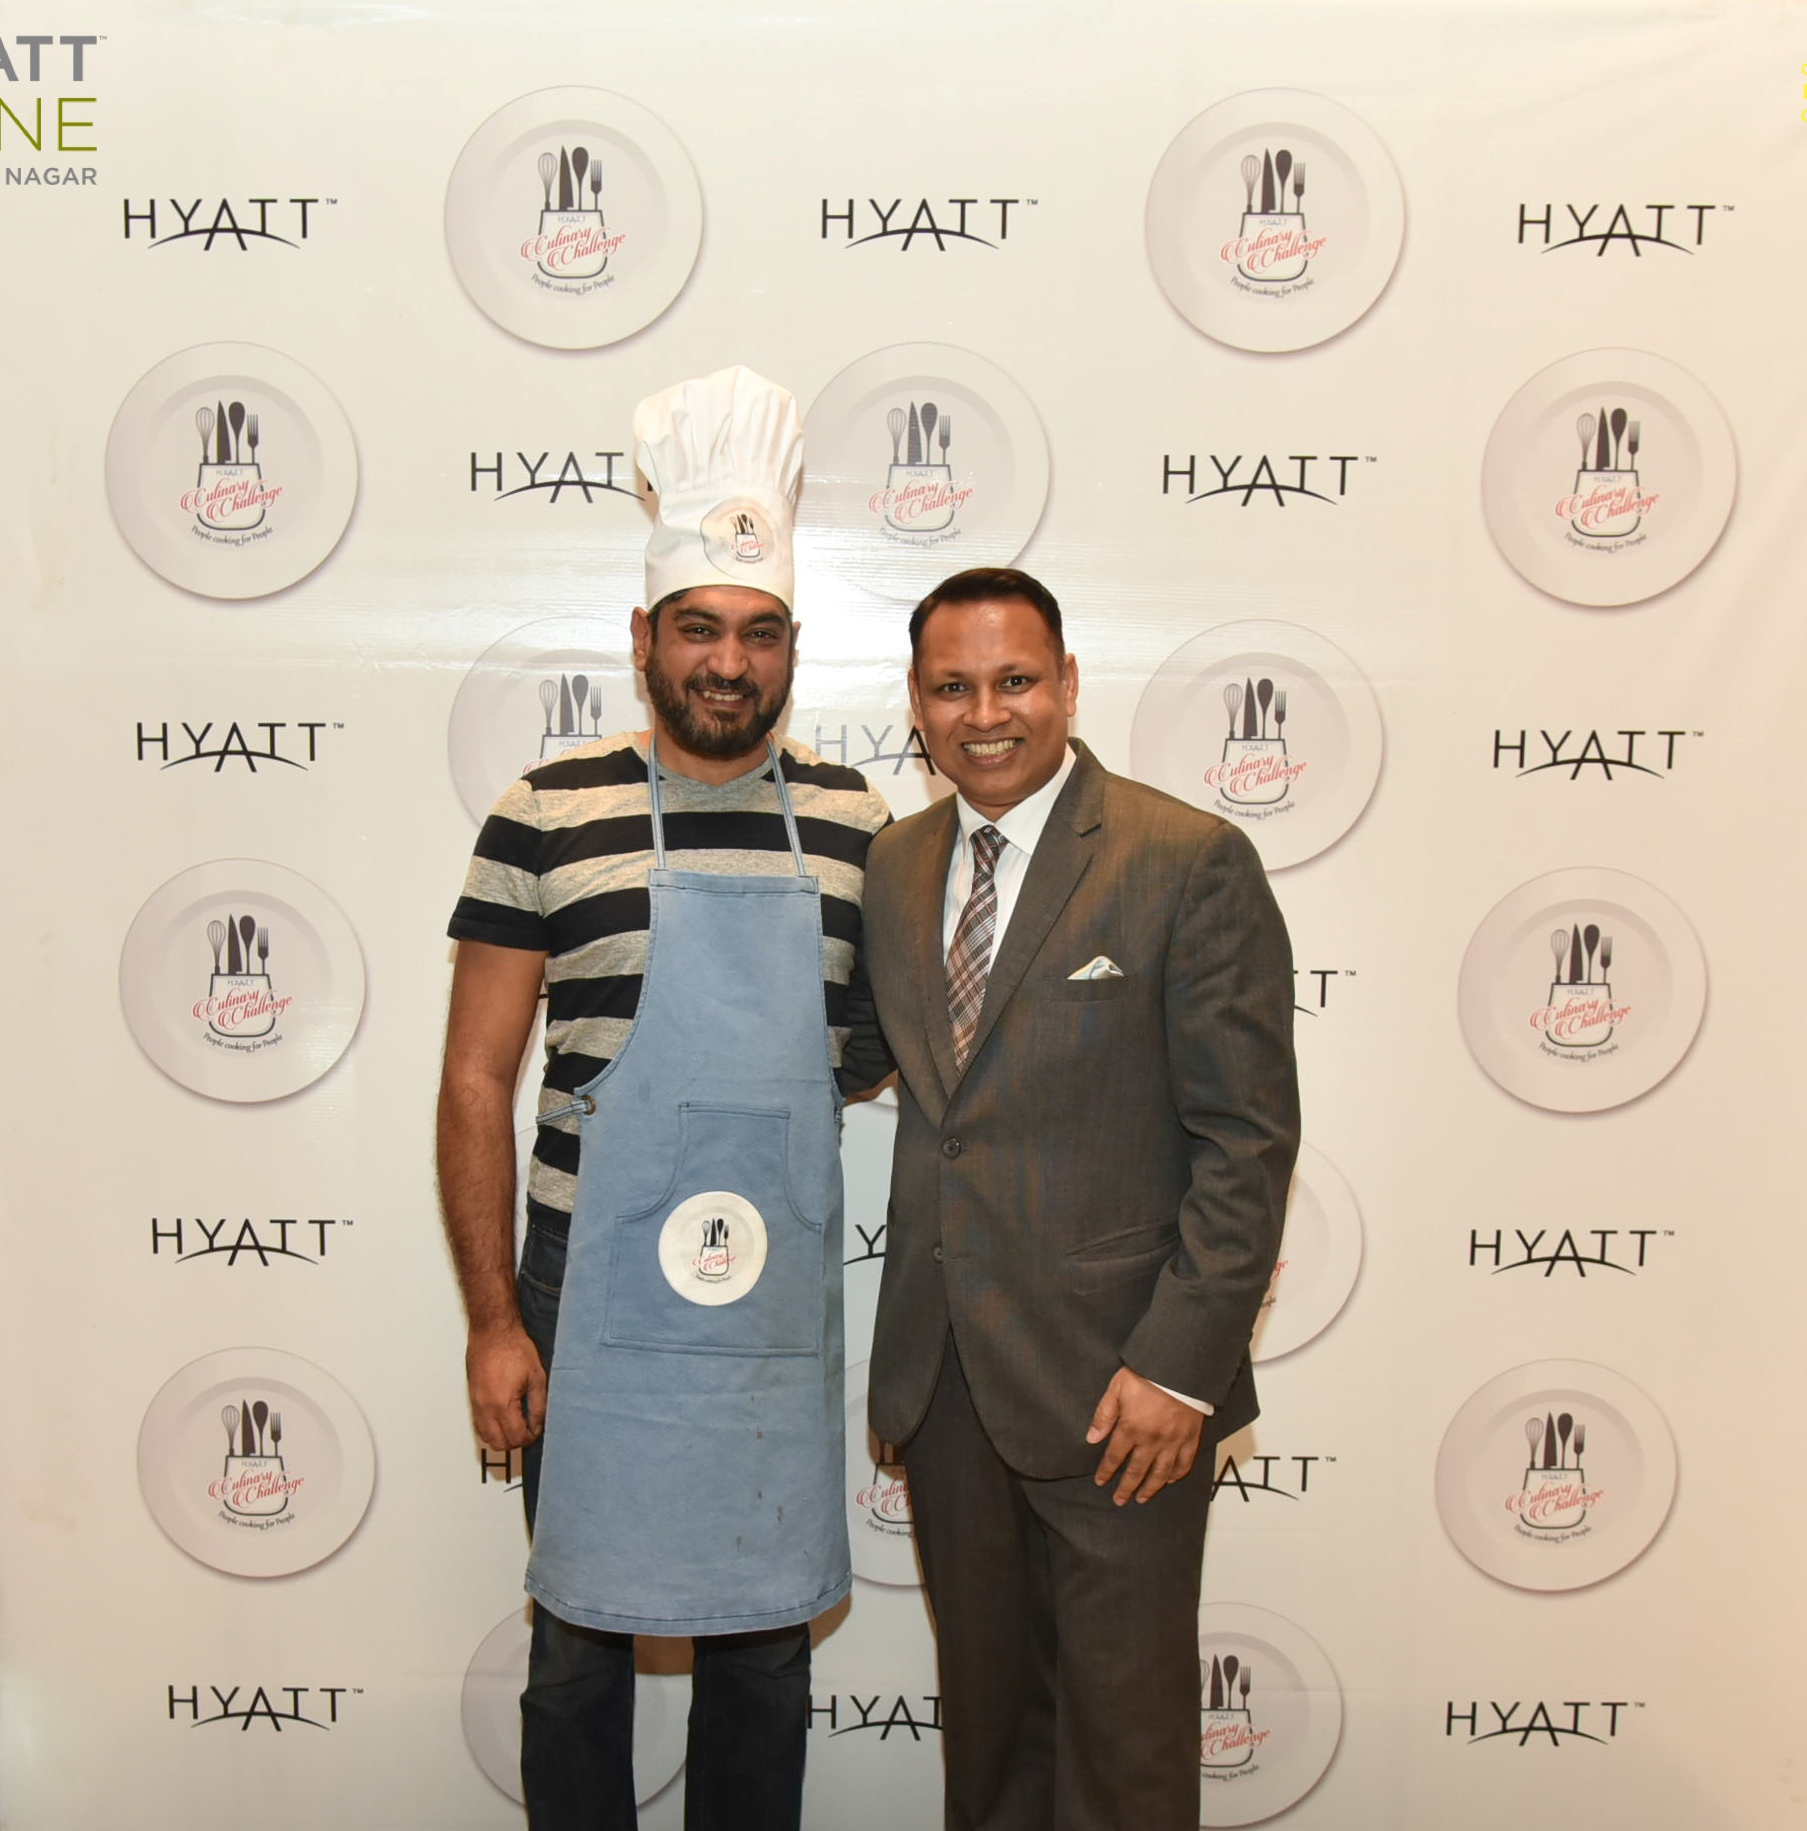 Winner Hyatt Culinary Challenge - Mr. Tarun Sharma CEO, BMC and General Manager Hyatt Pune - Mr. Sumit Kumar